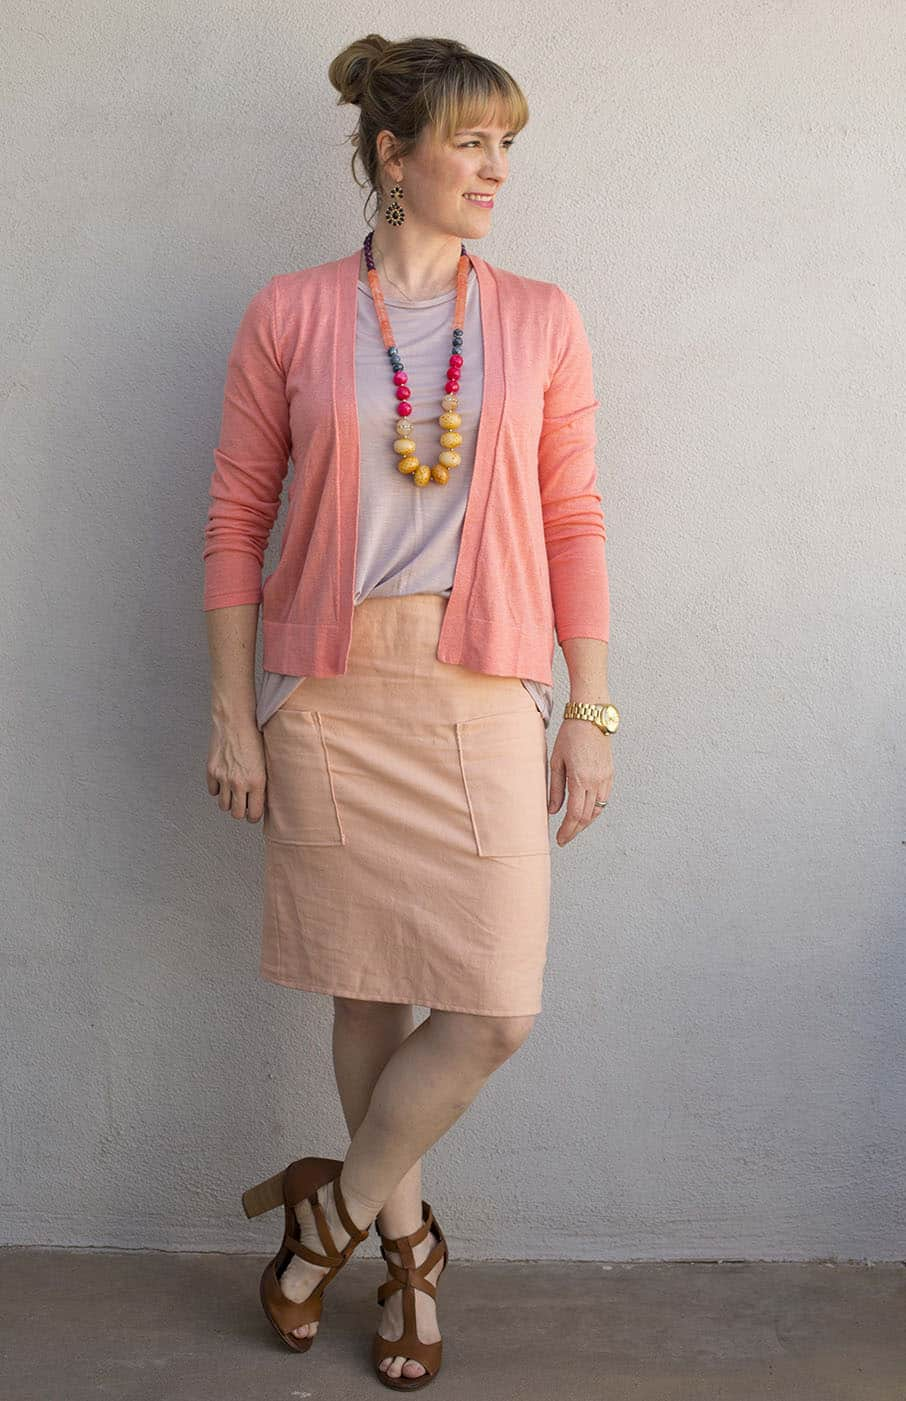 A capsule wardrobe takes what clothes you have and makes them enough! Use this warm weather capsule wardrobe as inspiration for curating your own outfit collection for spring and summer